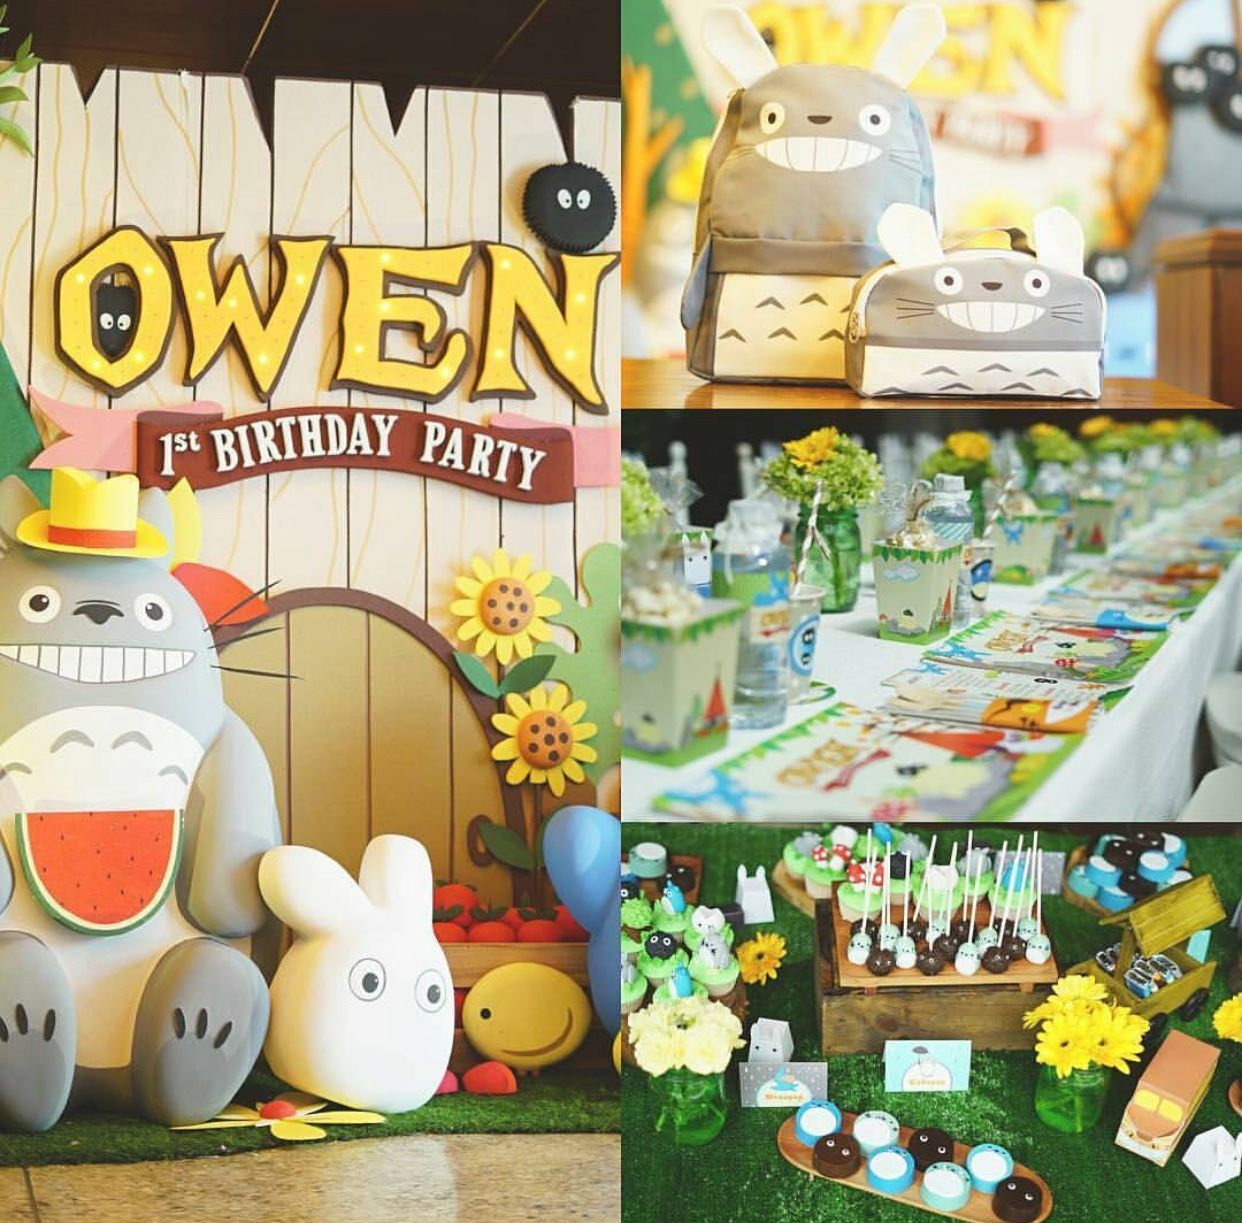 Pin by Abigail Felix on Totoro party (With images